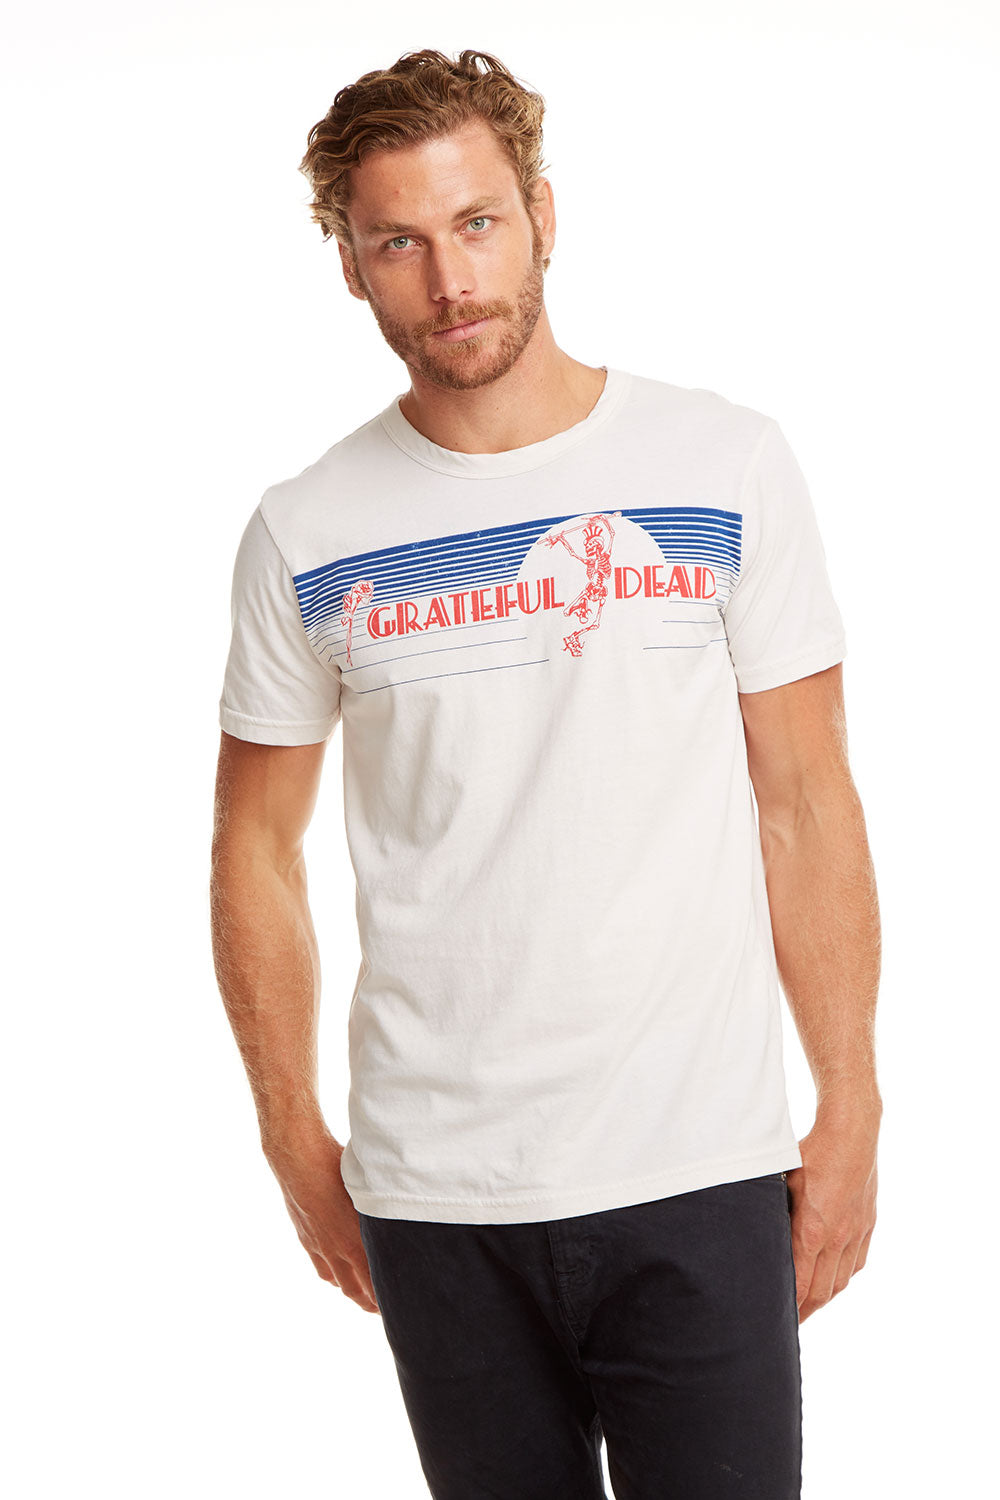 Grateful Dead - Dead Can Dance, MENS, chaserbrand.com,chaser clothing,chaser apparel,chaser los angeles